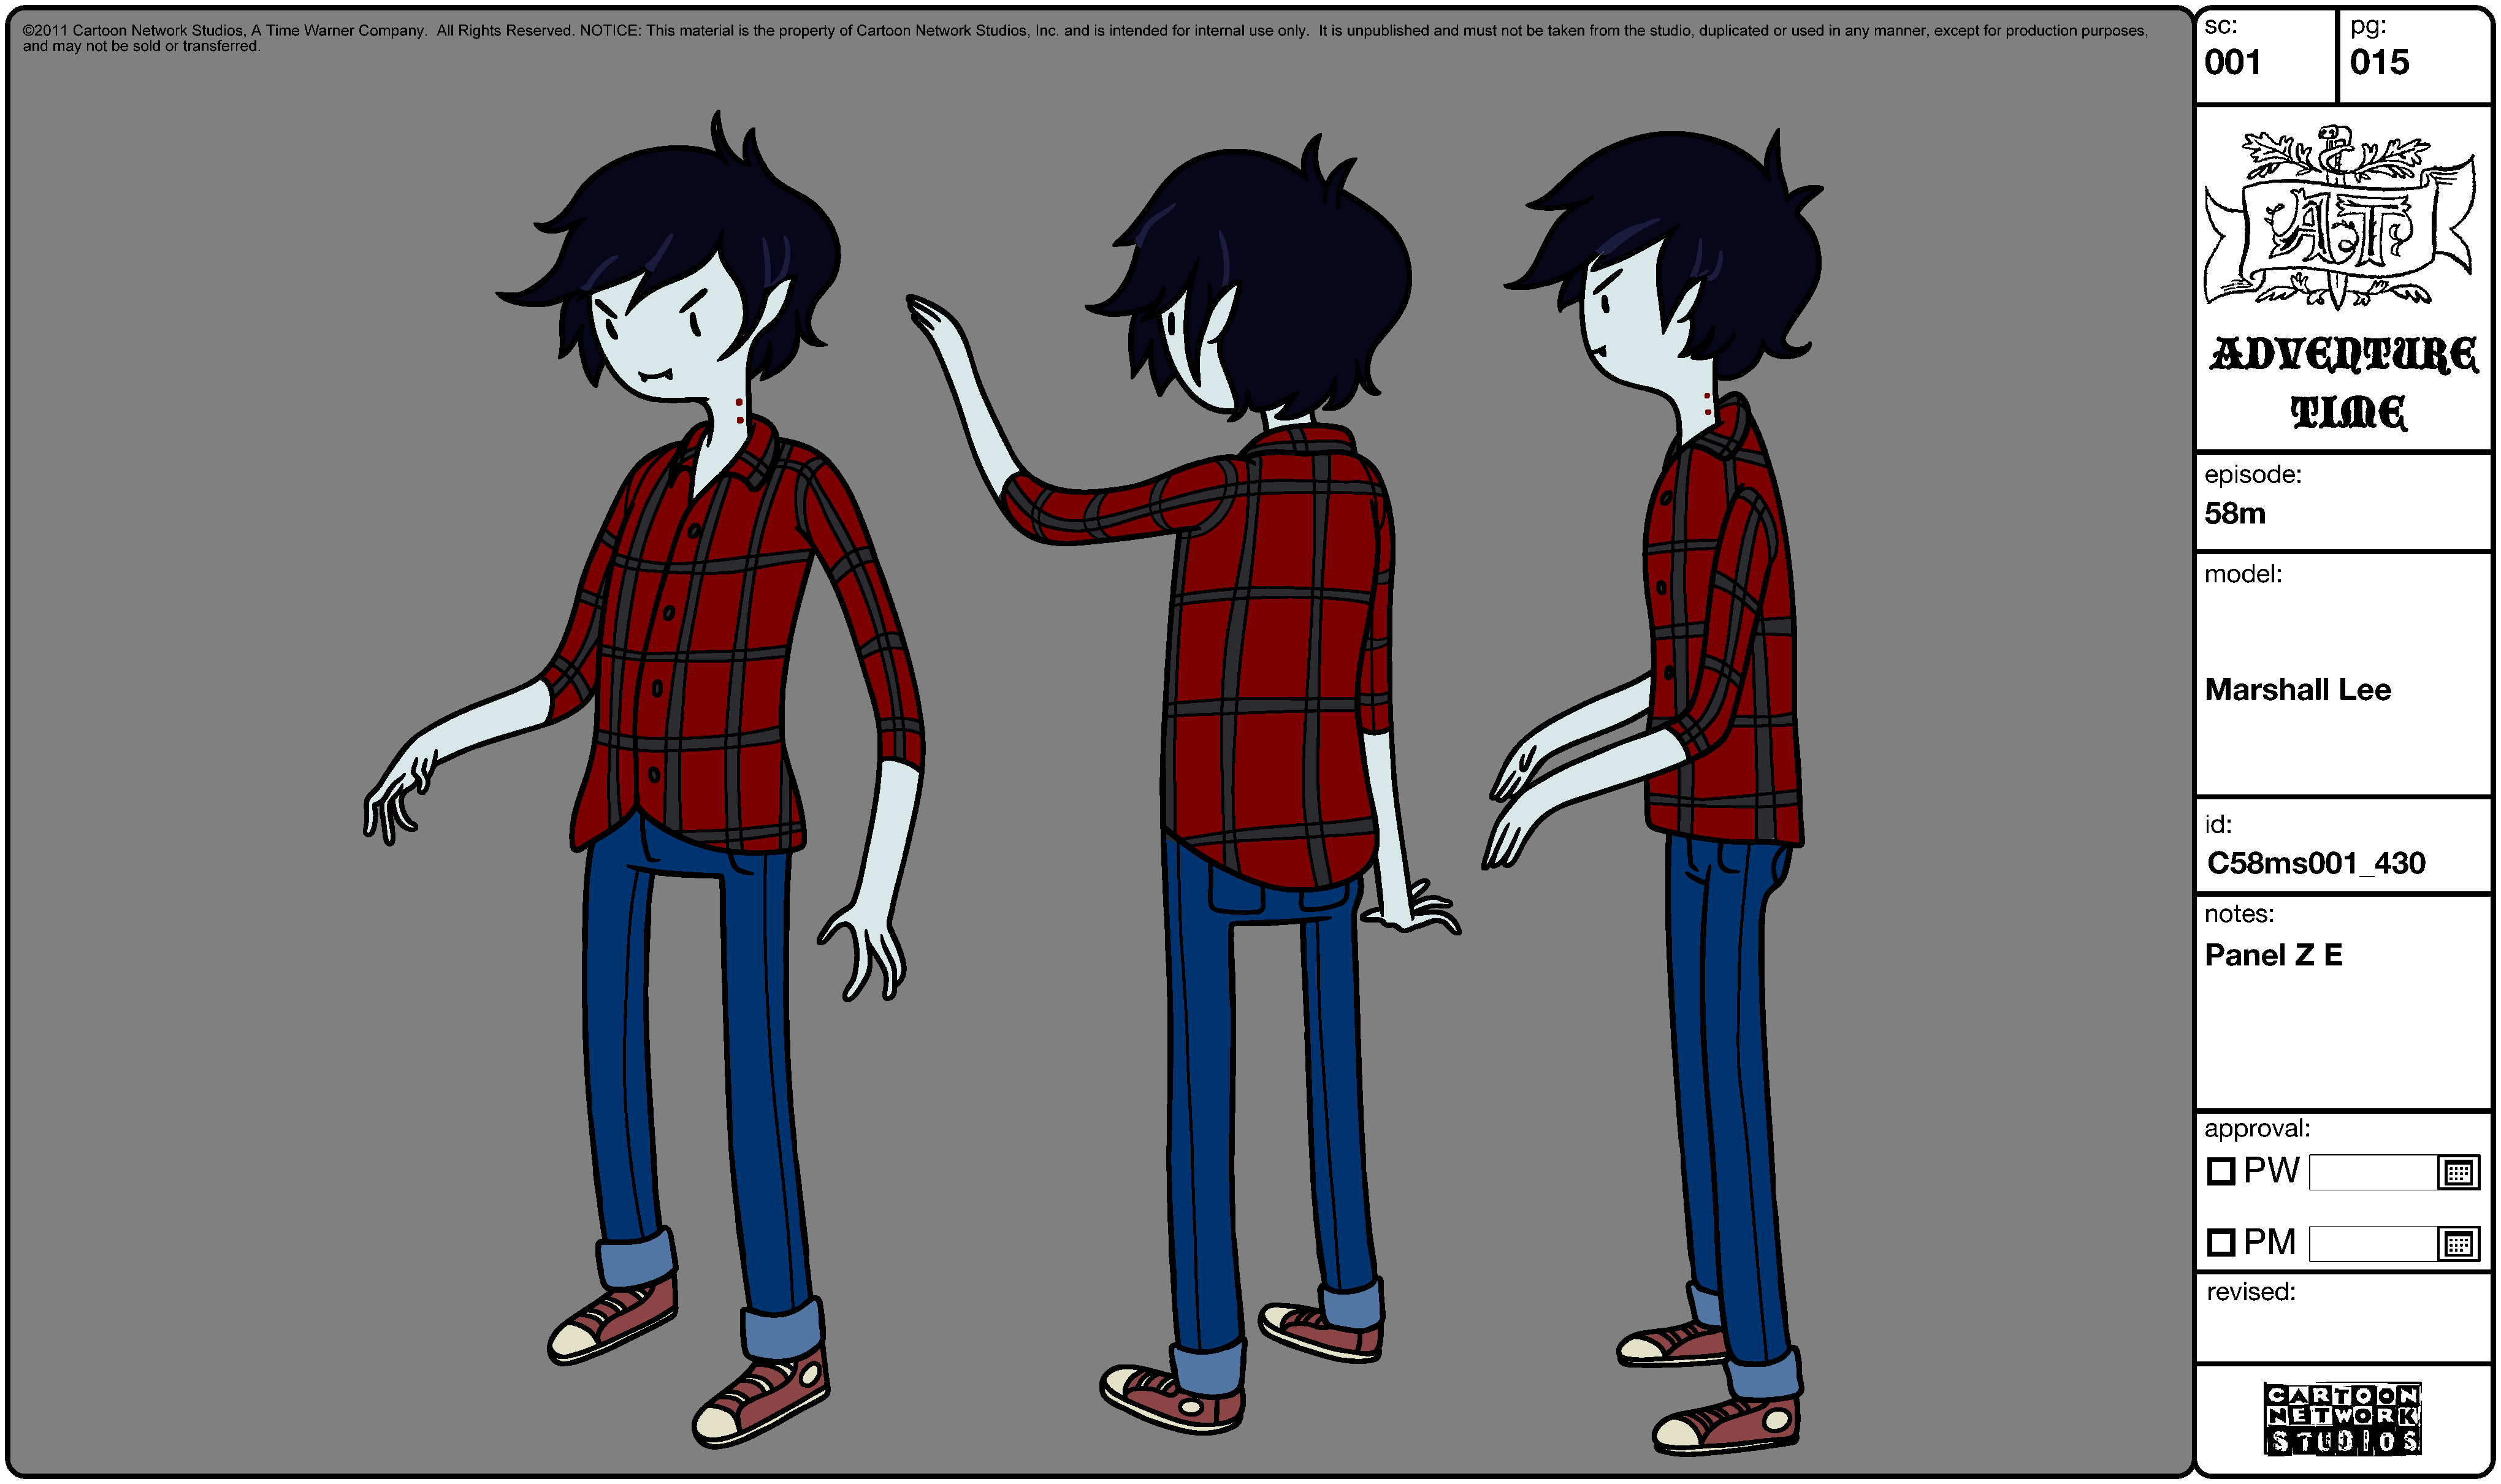 image gallery for Marshall Lee may be viewed at Marshall Lee/Gallery